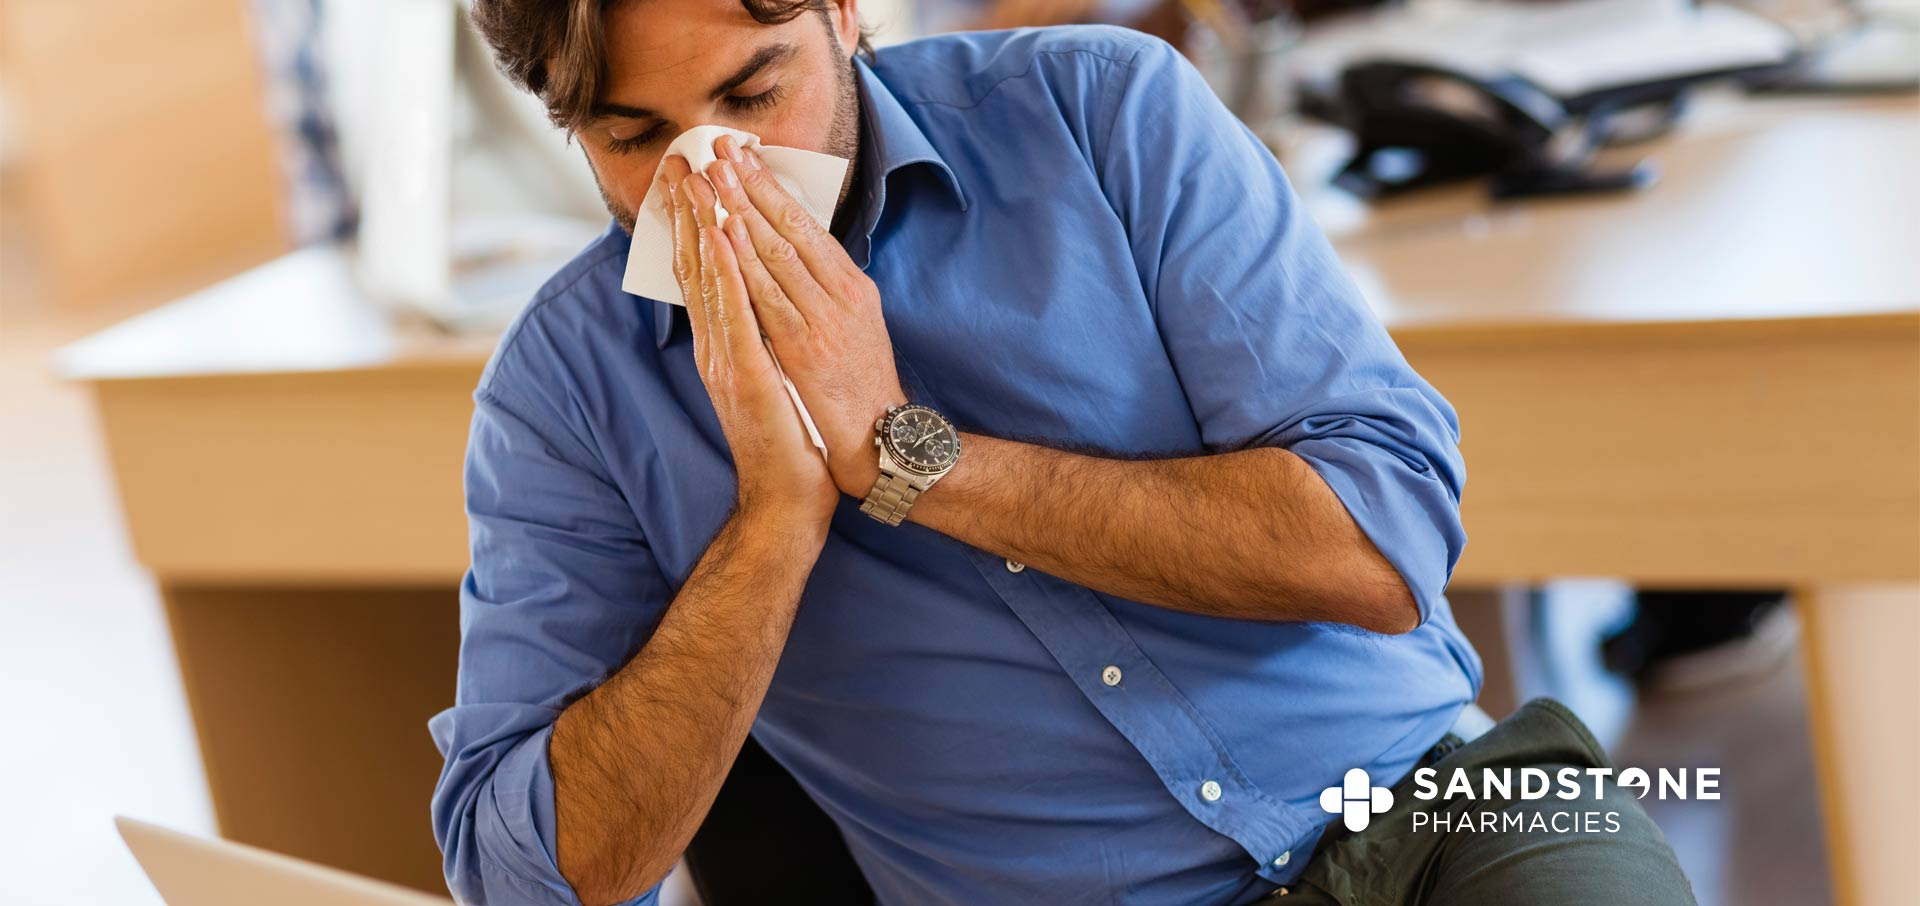 Washed Your Hands After Sneezing? Not Everyone Does.